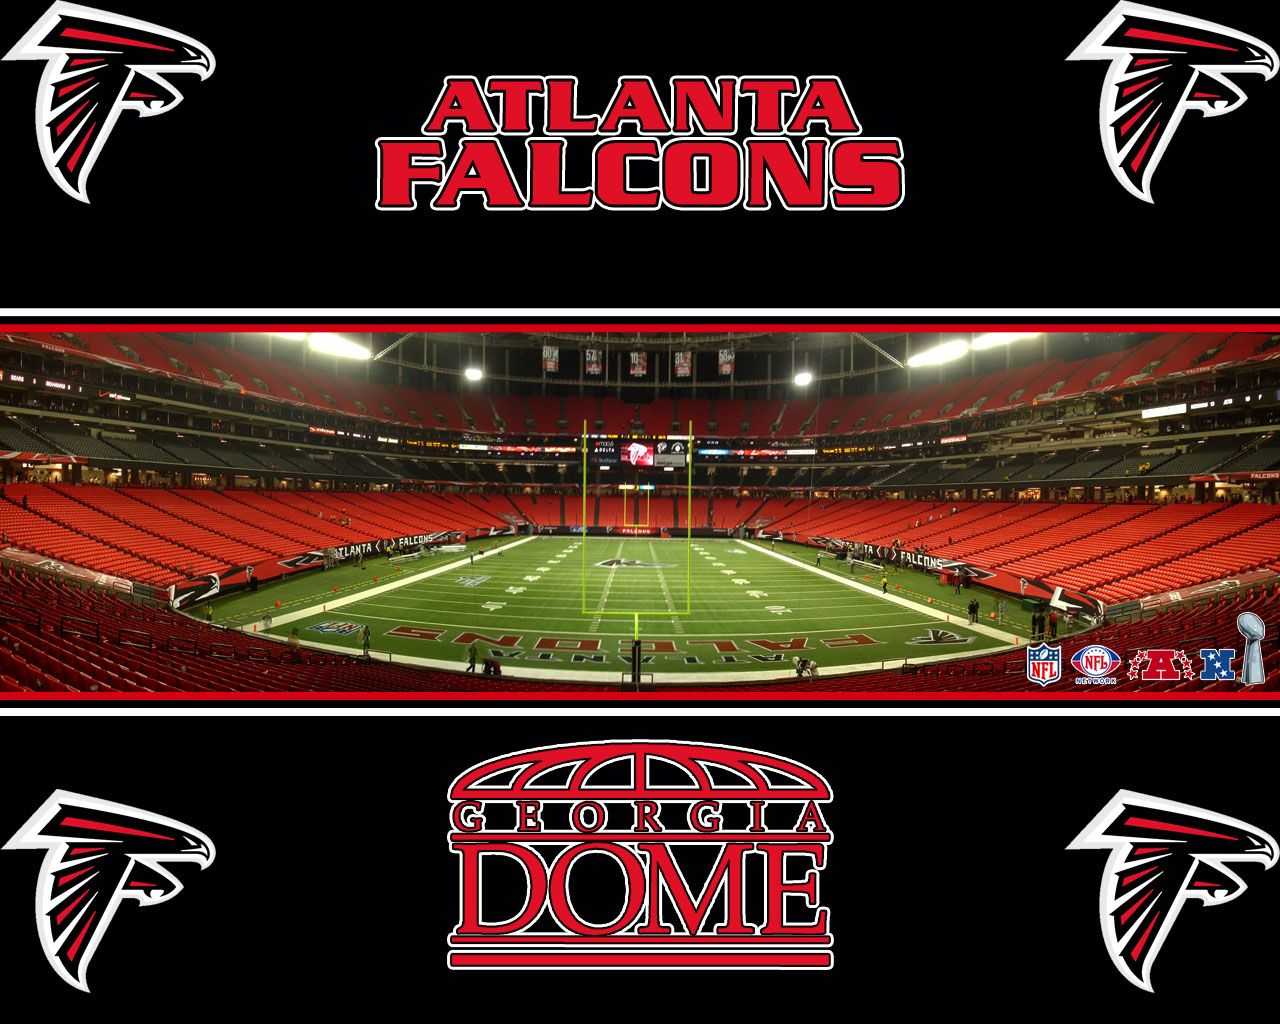 Atlanta Falcons Season Tickets Endzone Club Level Atlanta Falcons Atlanta Falcons Football Atlanta Falcons Fans